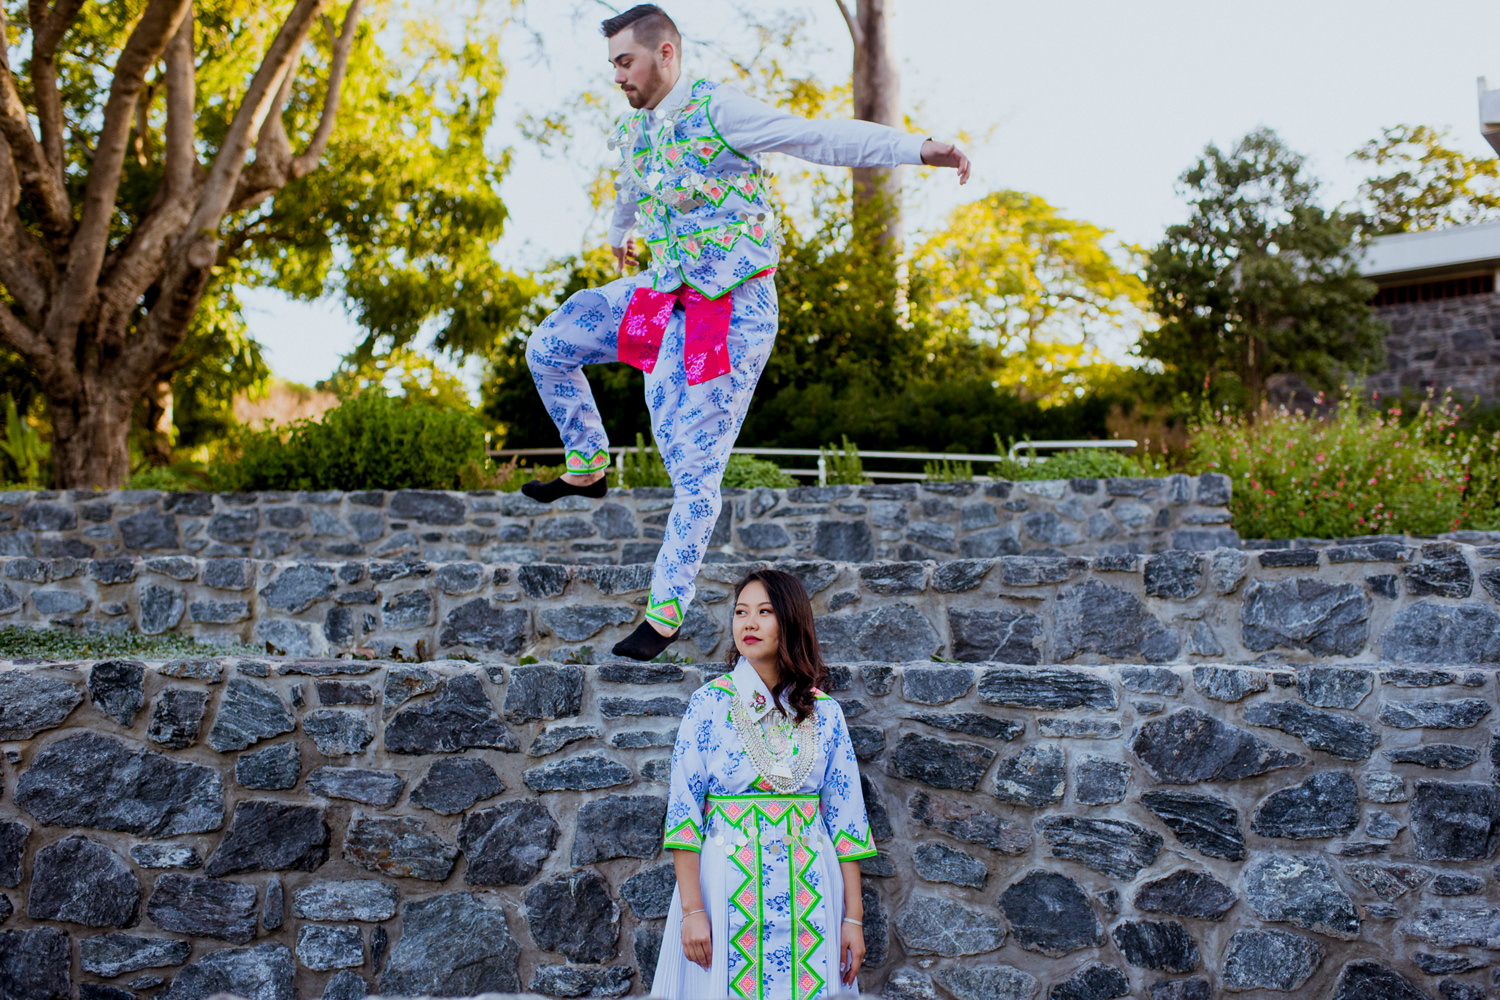 Young man wearing traditional Hmong clothes hops over woman's head on a stone wall